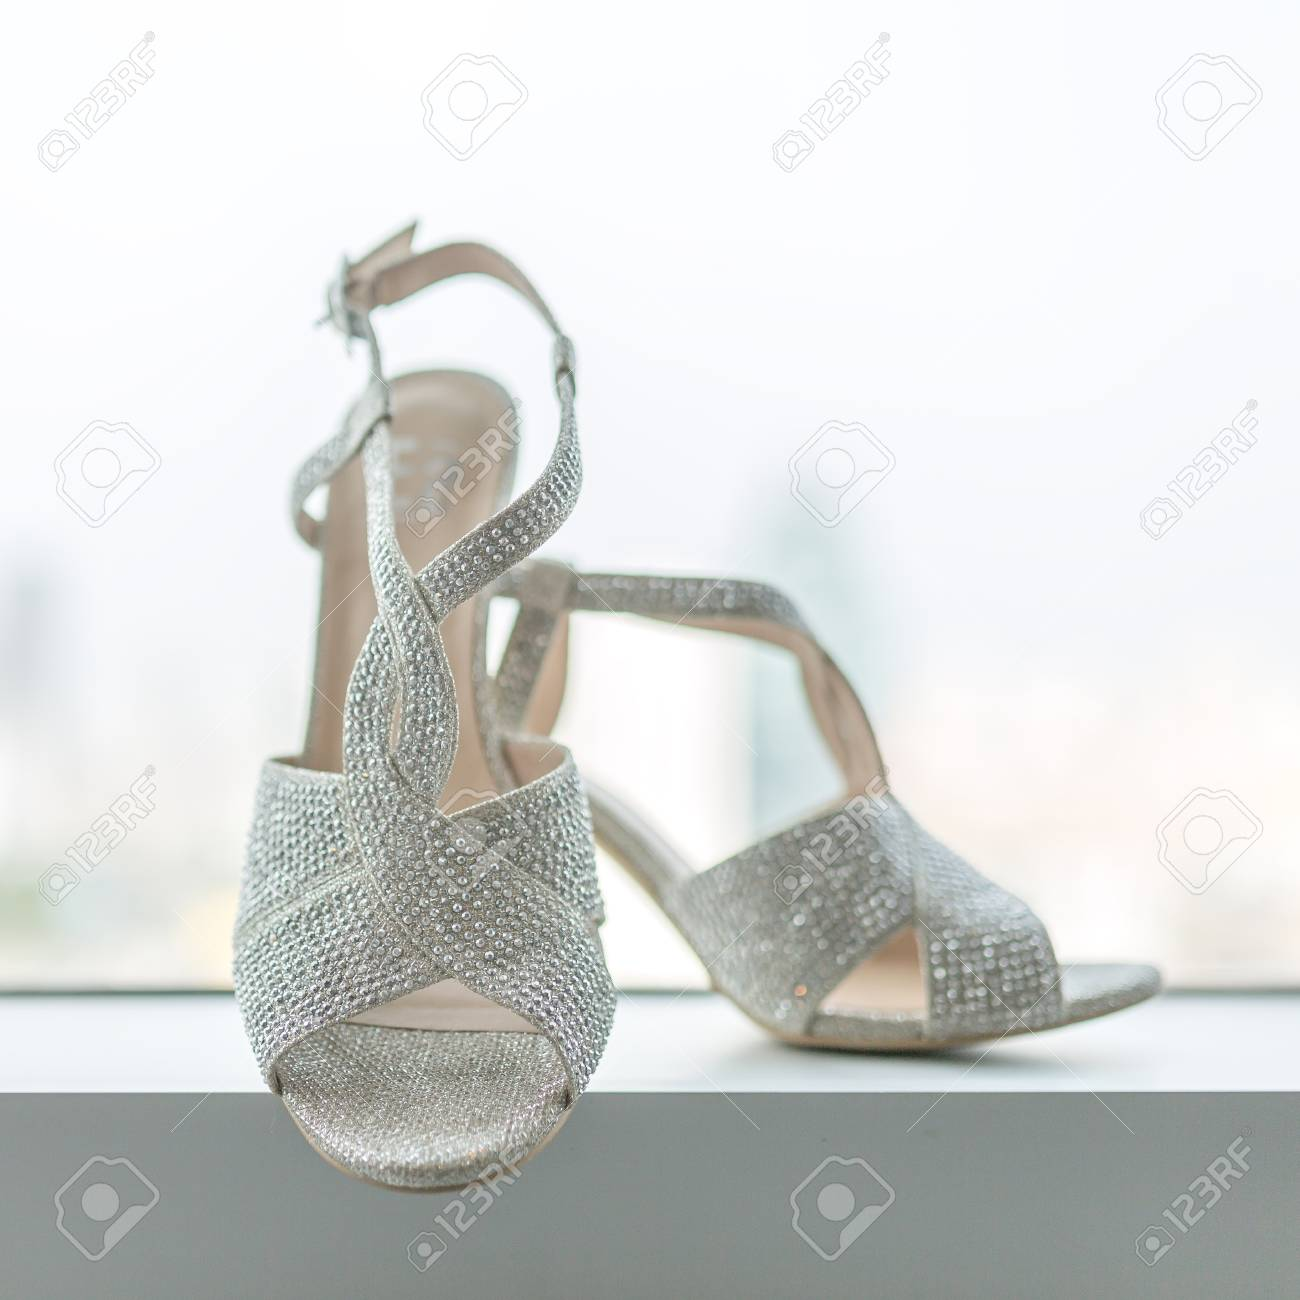 a0a826d4723 Elegant and stylish bridal shoes in a window. - Shallow of focus Stock  Photo -